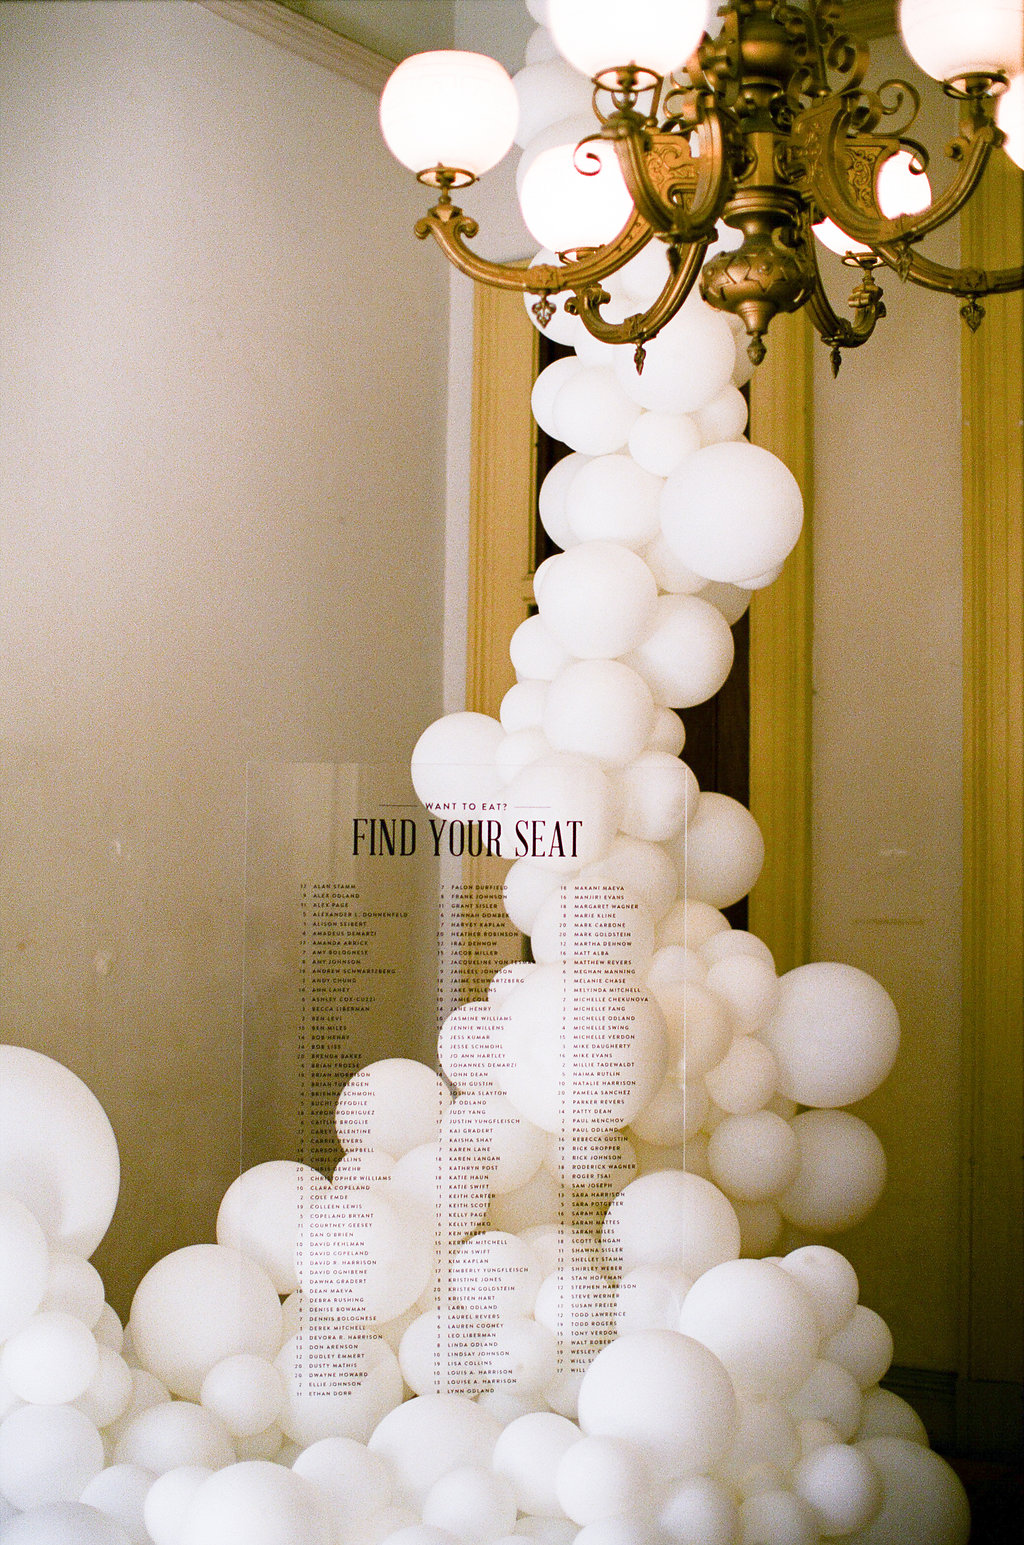 Wedding balloons Organic Balloon Art Napa Valley St. Helena - Zim Balloons.jpg